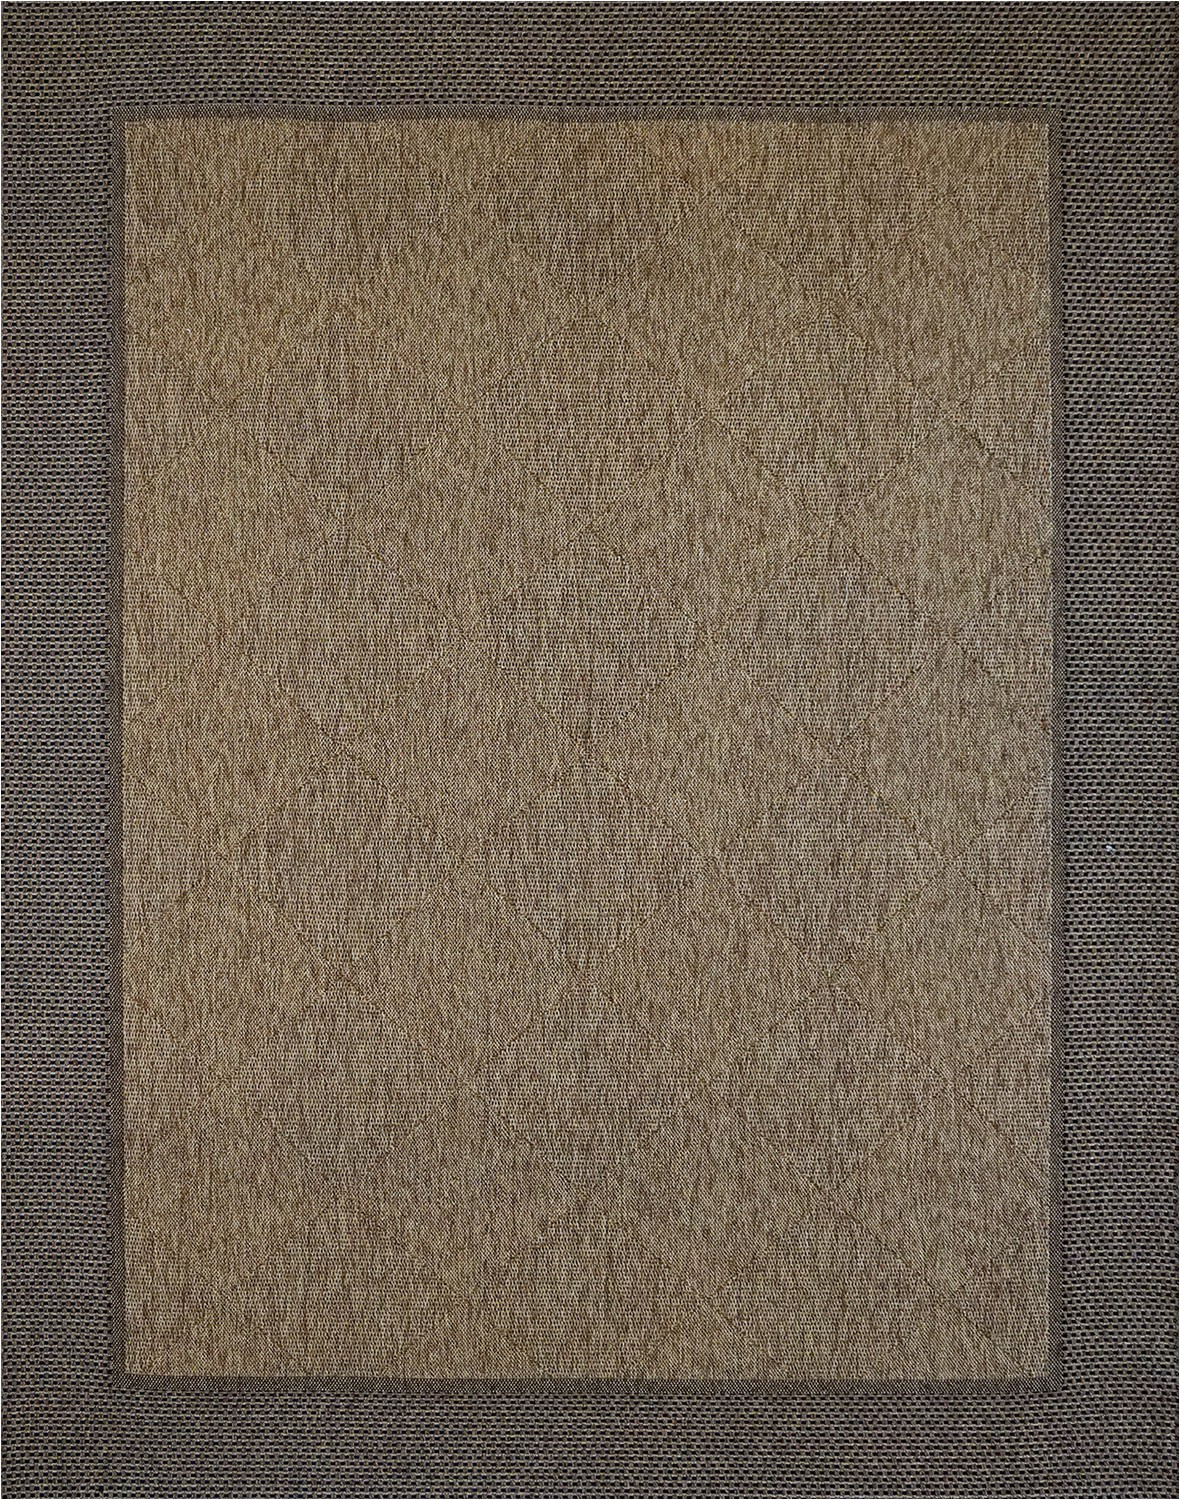 Outdoor 8 X 10 area Rugs Megalo Collection Chestnut Black Rug 8×10